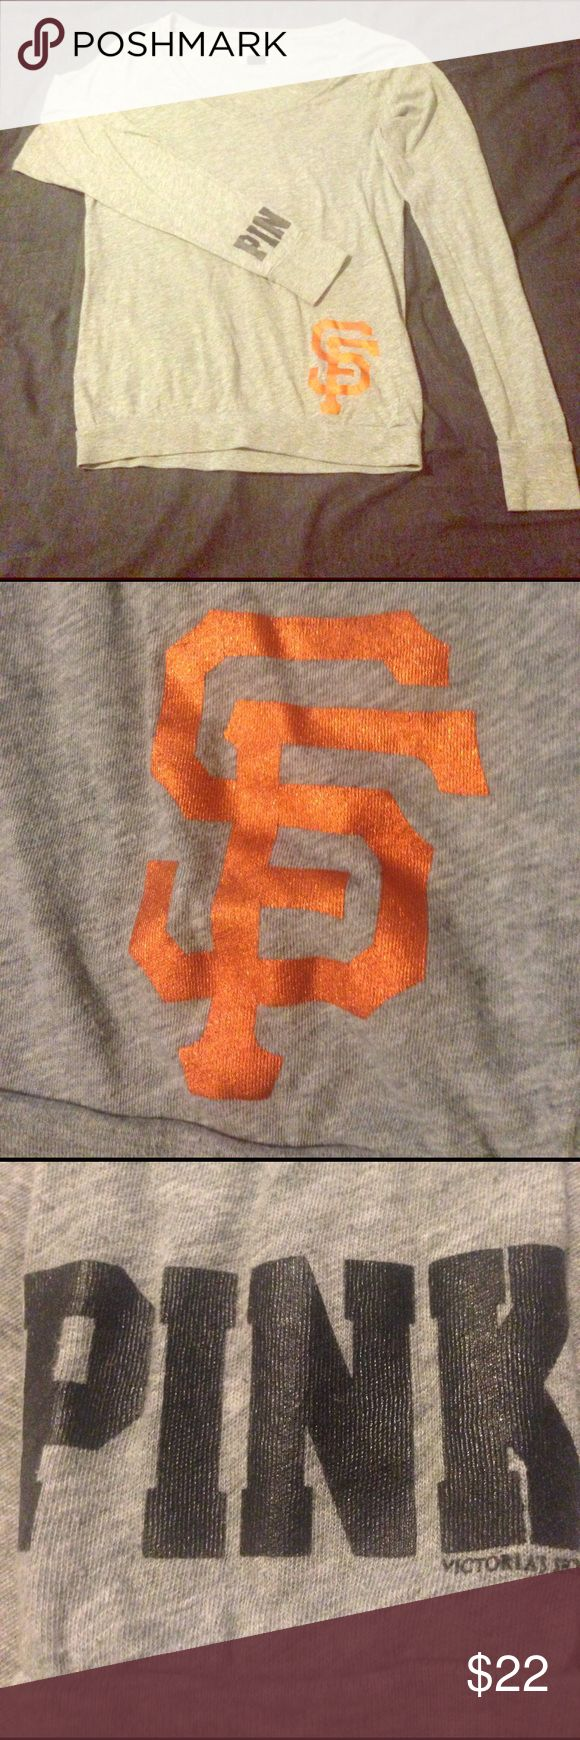 """Victoria's Secret Pink MLB SF Giants Shirt Long sleeve gray shirt. Only worn a few times. Minimal wear. """"Pink"""" on the sleeve. """"Caught looking"""" on the back. Wording is partially metallic. SF giants MLB shirt. PINK Victoria's Secret Tops Tees - Long Sleeve"""